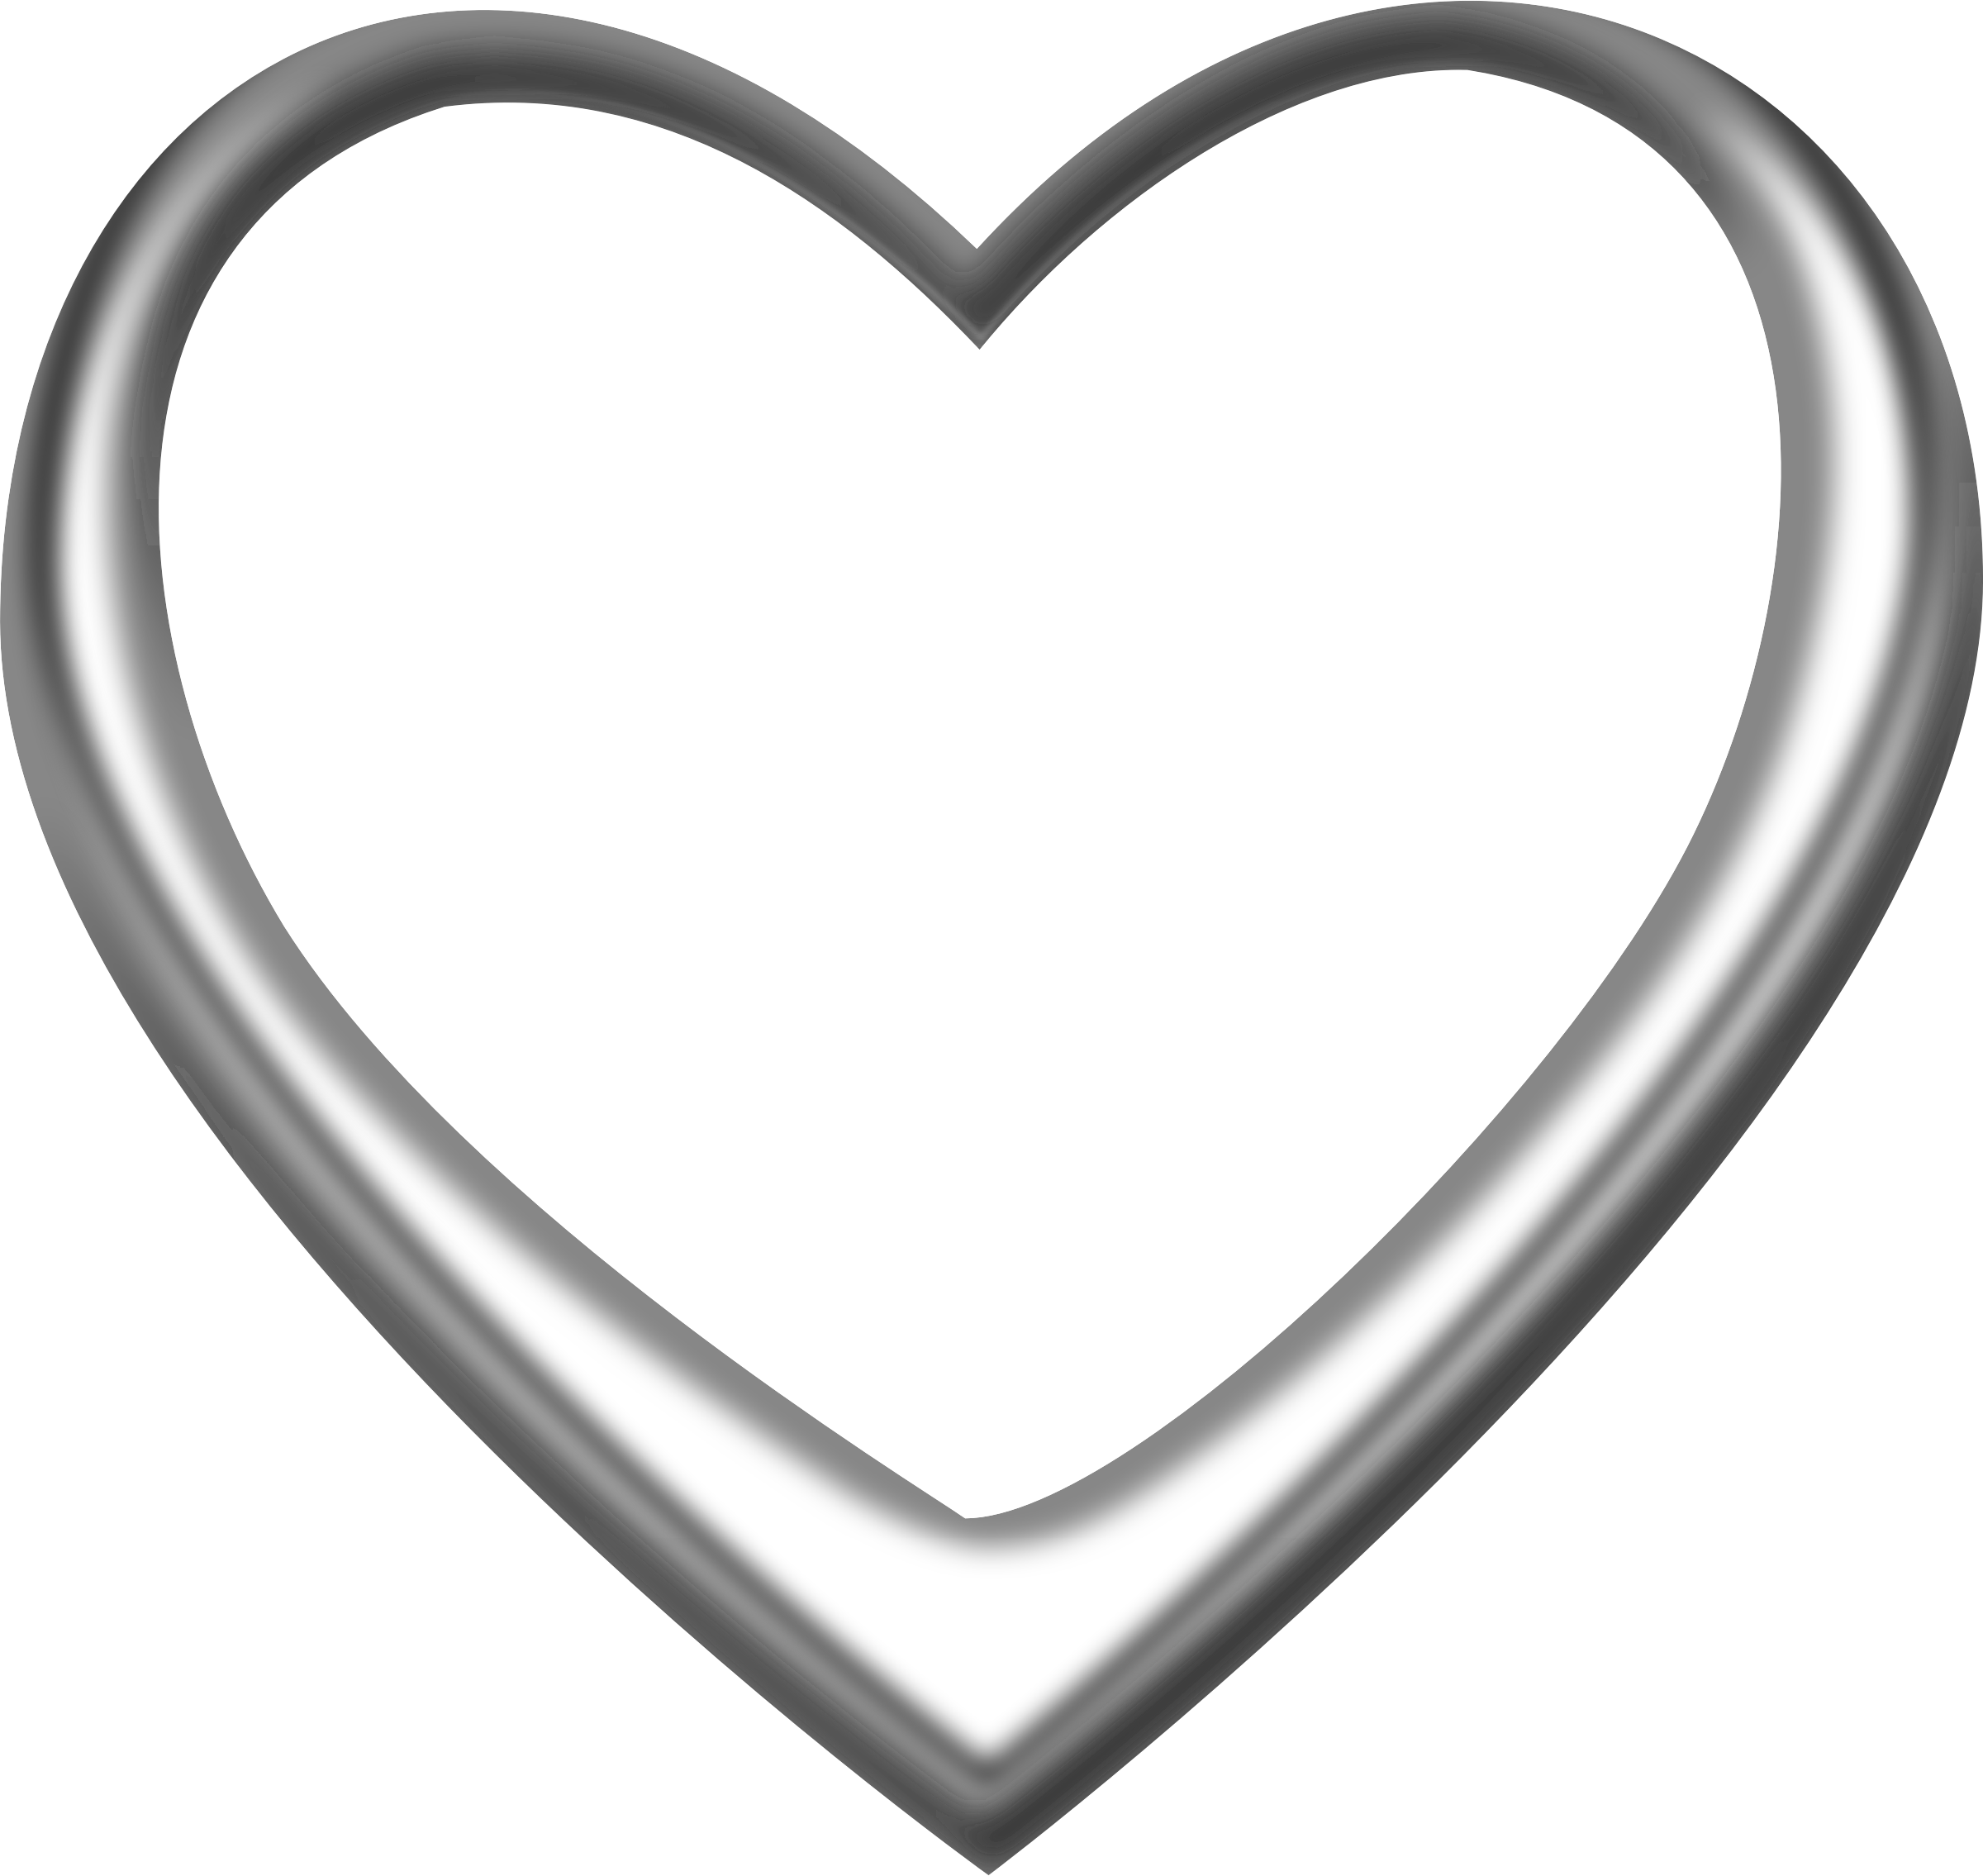 Silver heart png. Clipart big image